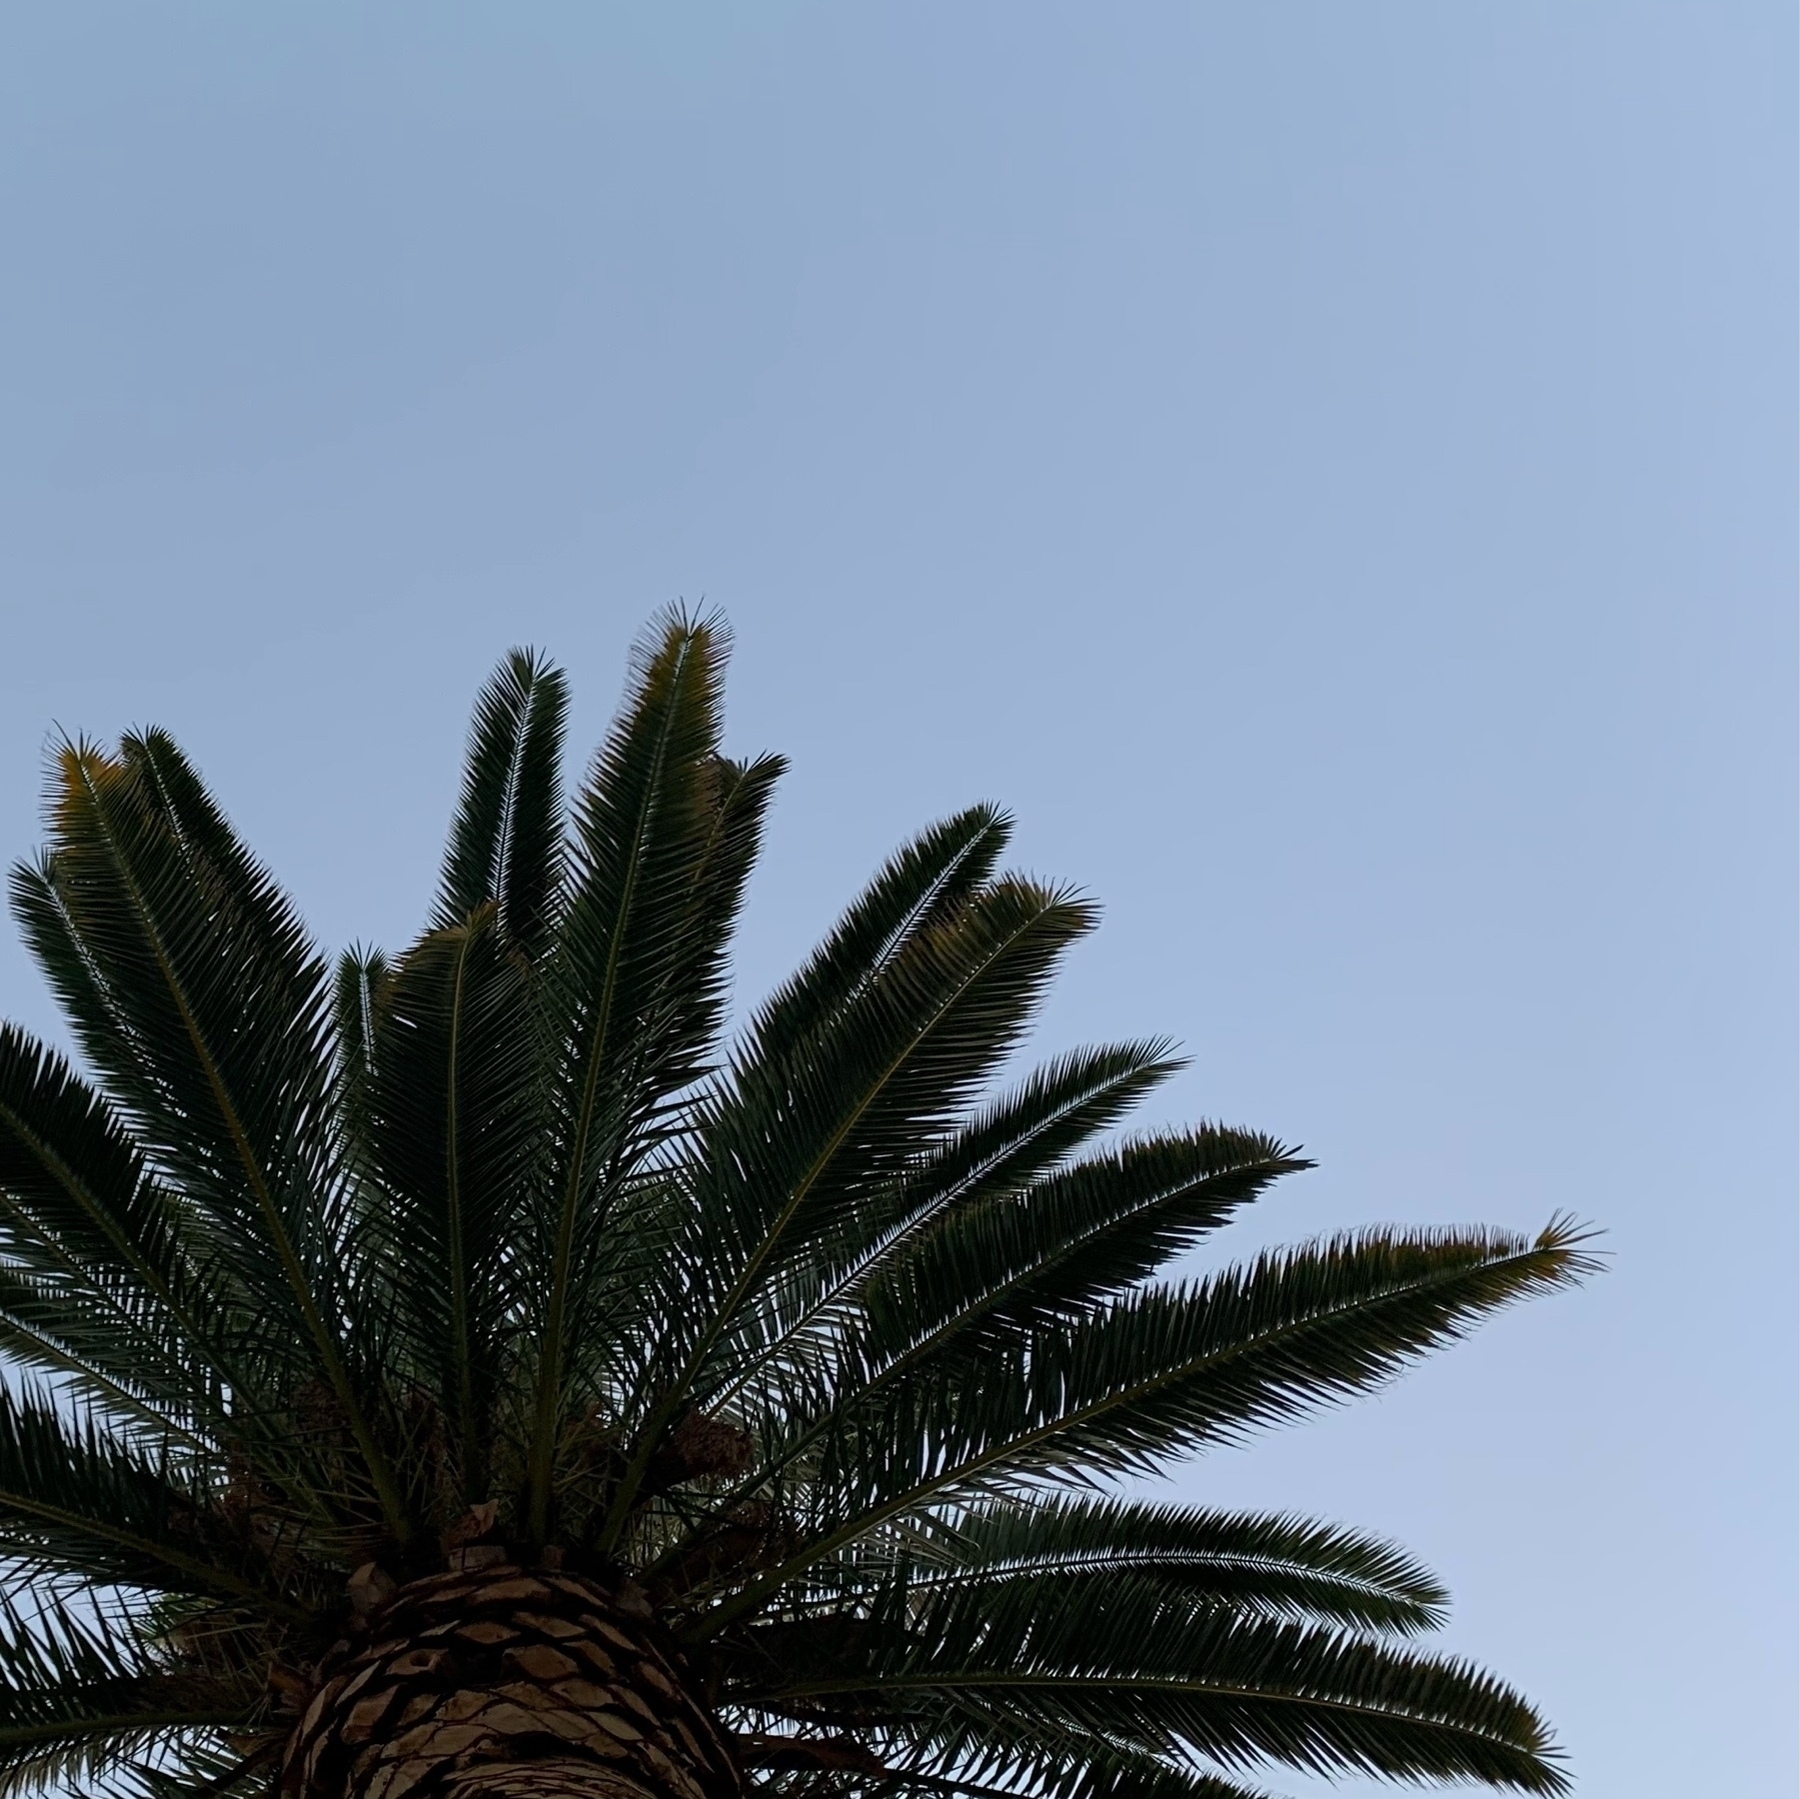 view looking up into a palm tree and clear evening sky